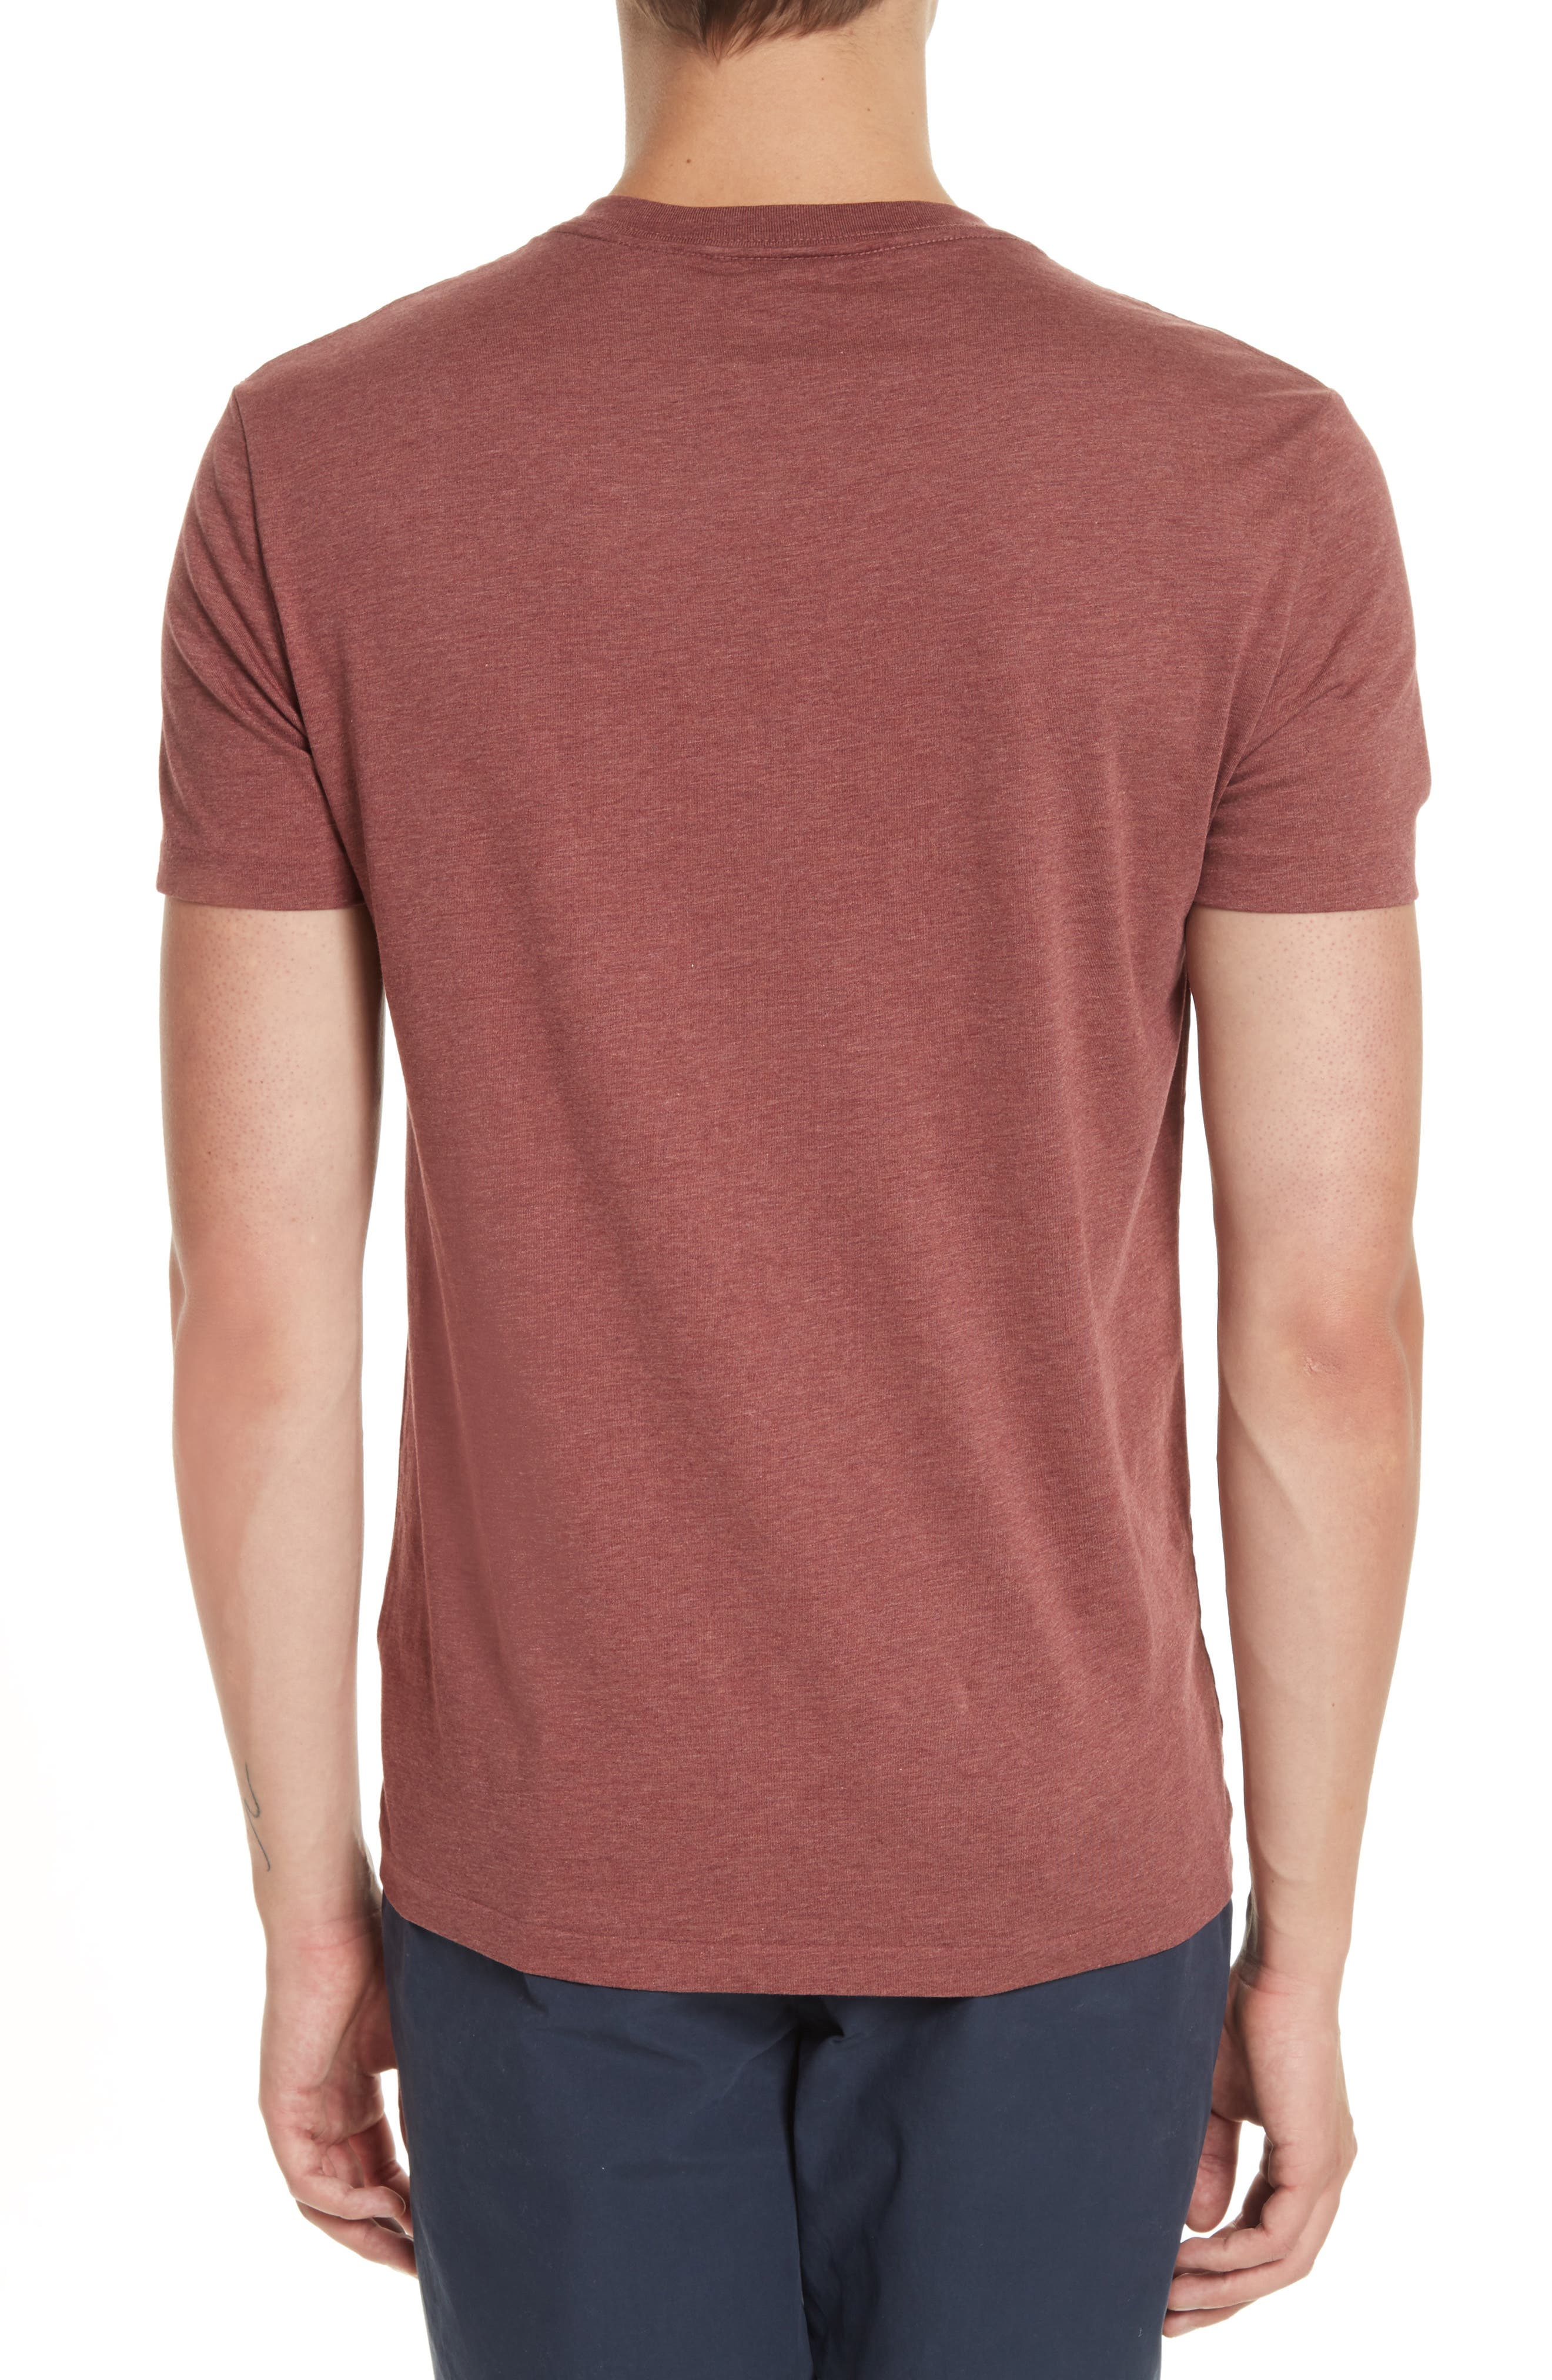 Lindon Cotton T-Shirt,                             Alternate thumbnail 2, color,                             Russet Melange